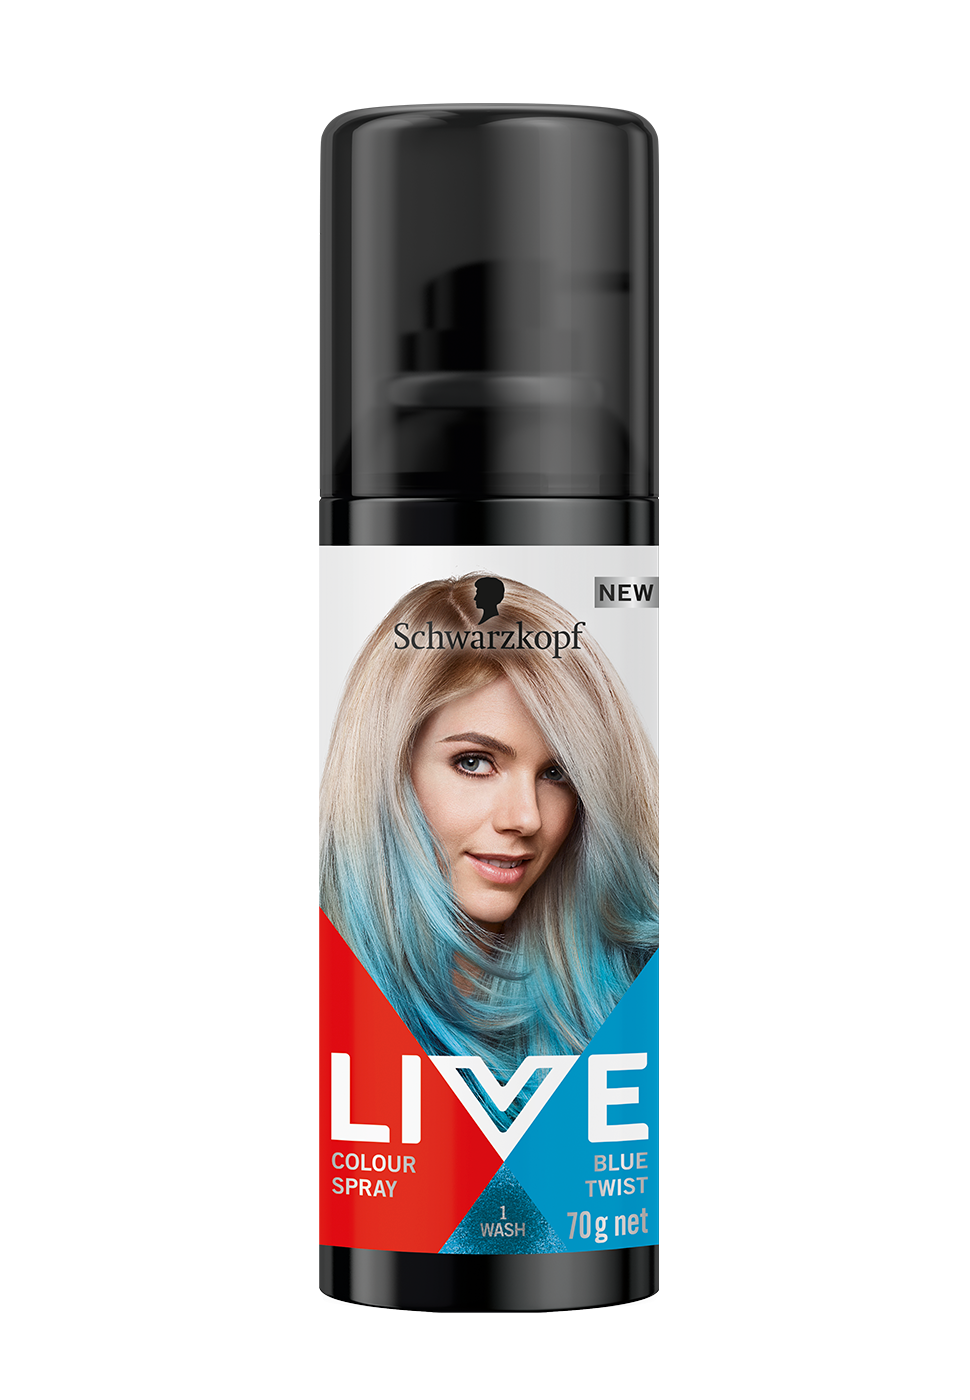 CareLiveColourSprayBlueTwist